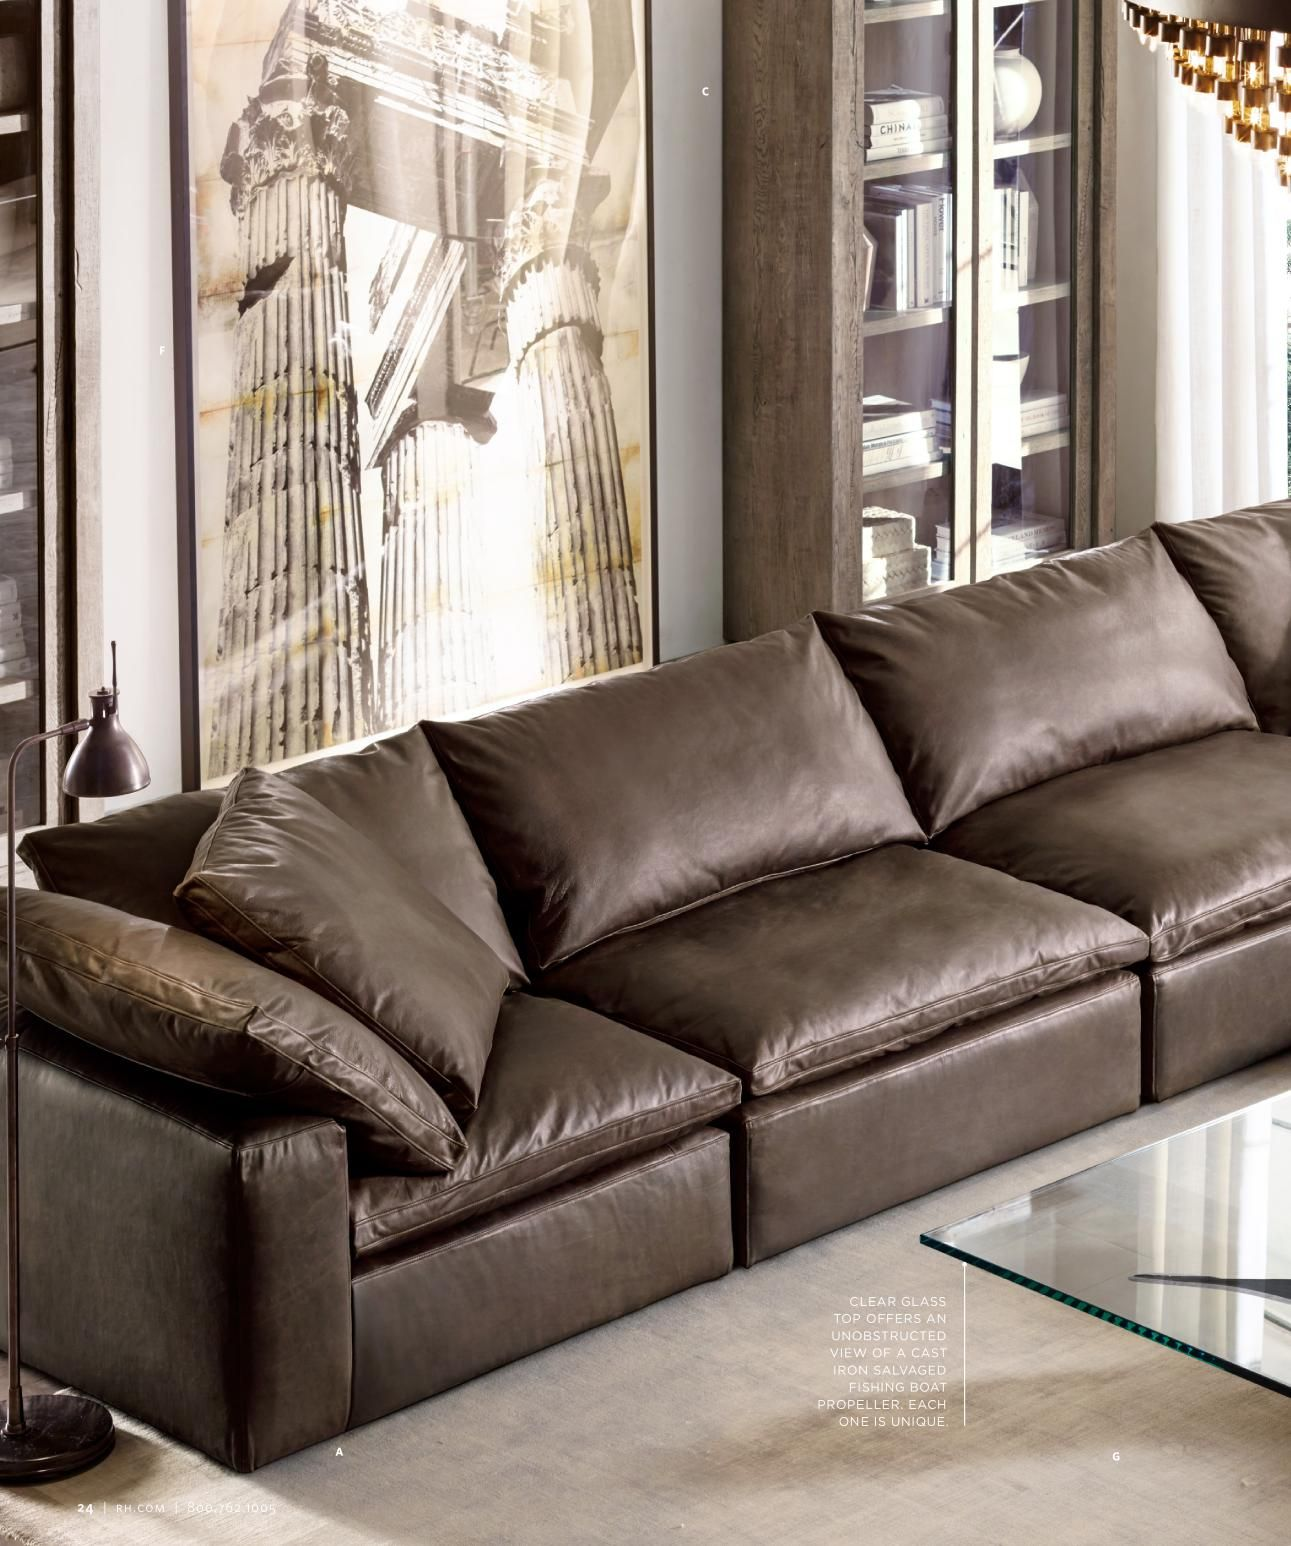 Rh Cloud Sofa Rh Cloud Leather Sofa I Want It In White Alluring